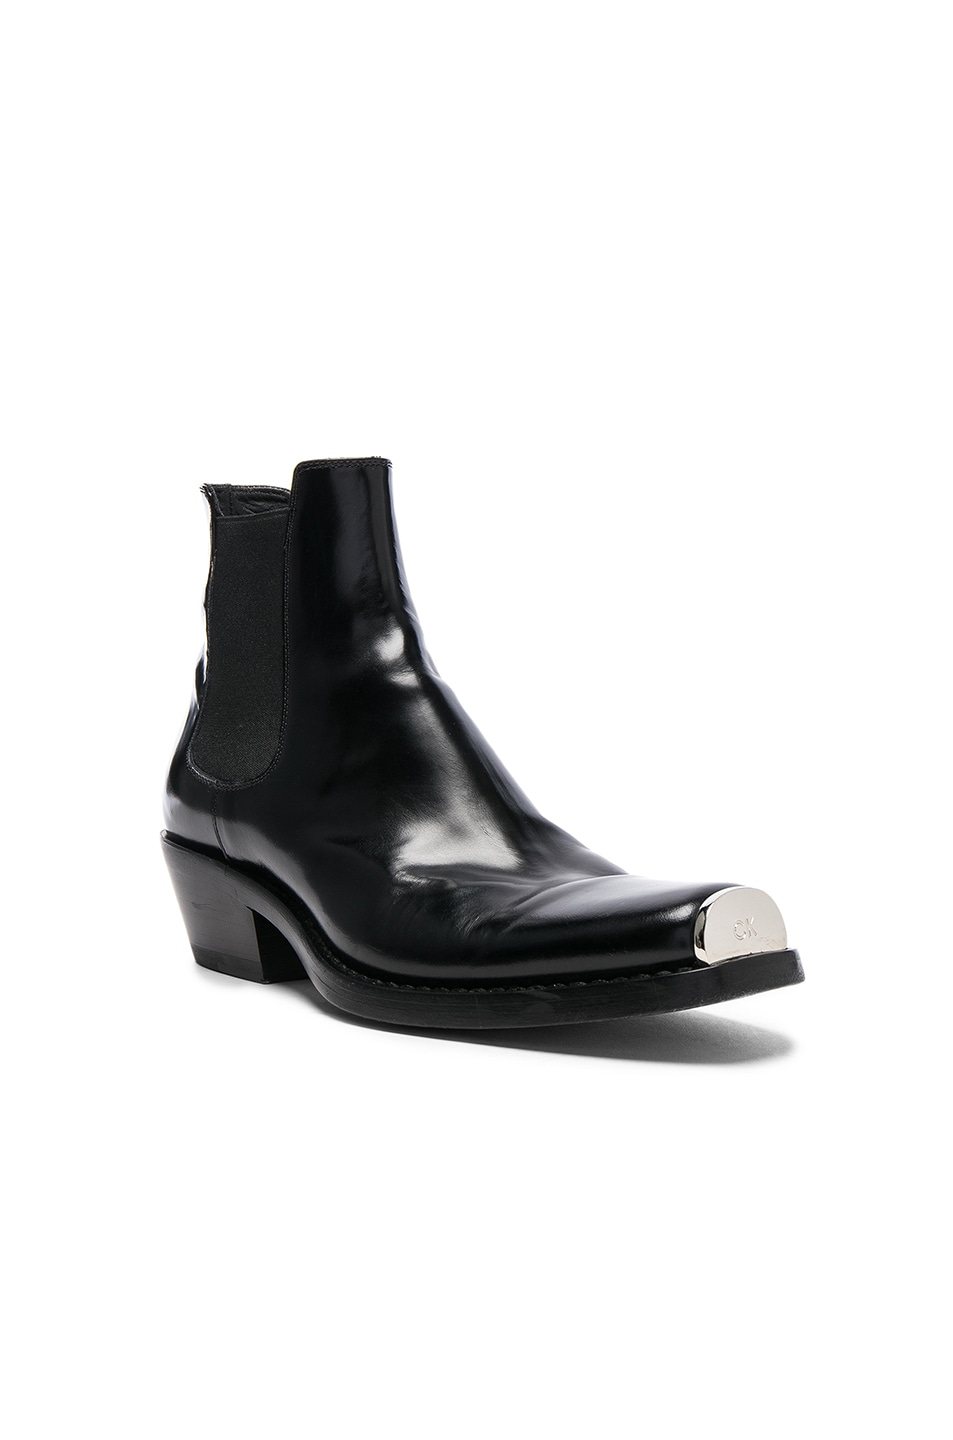 77352033ee9 CALVIN KLEIN 205W39NYC Claire Leather Western Ankle Boots in Black ...